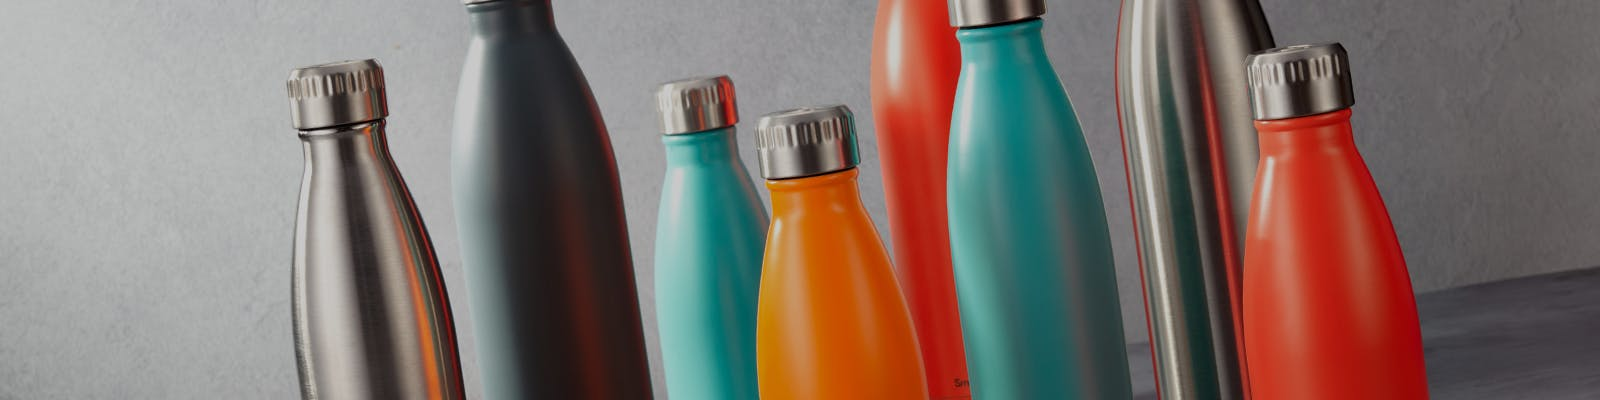 Insulated water bottles - stainless steel, grey, blue, orange, red